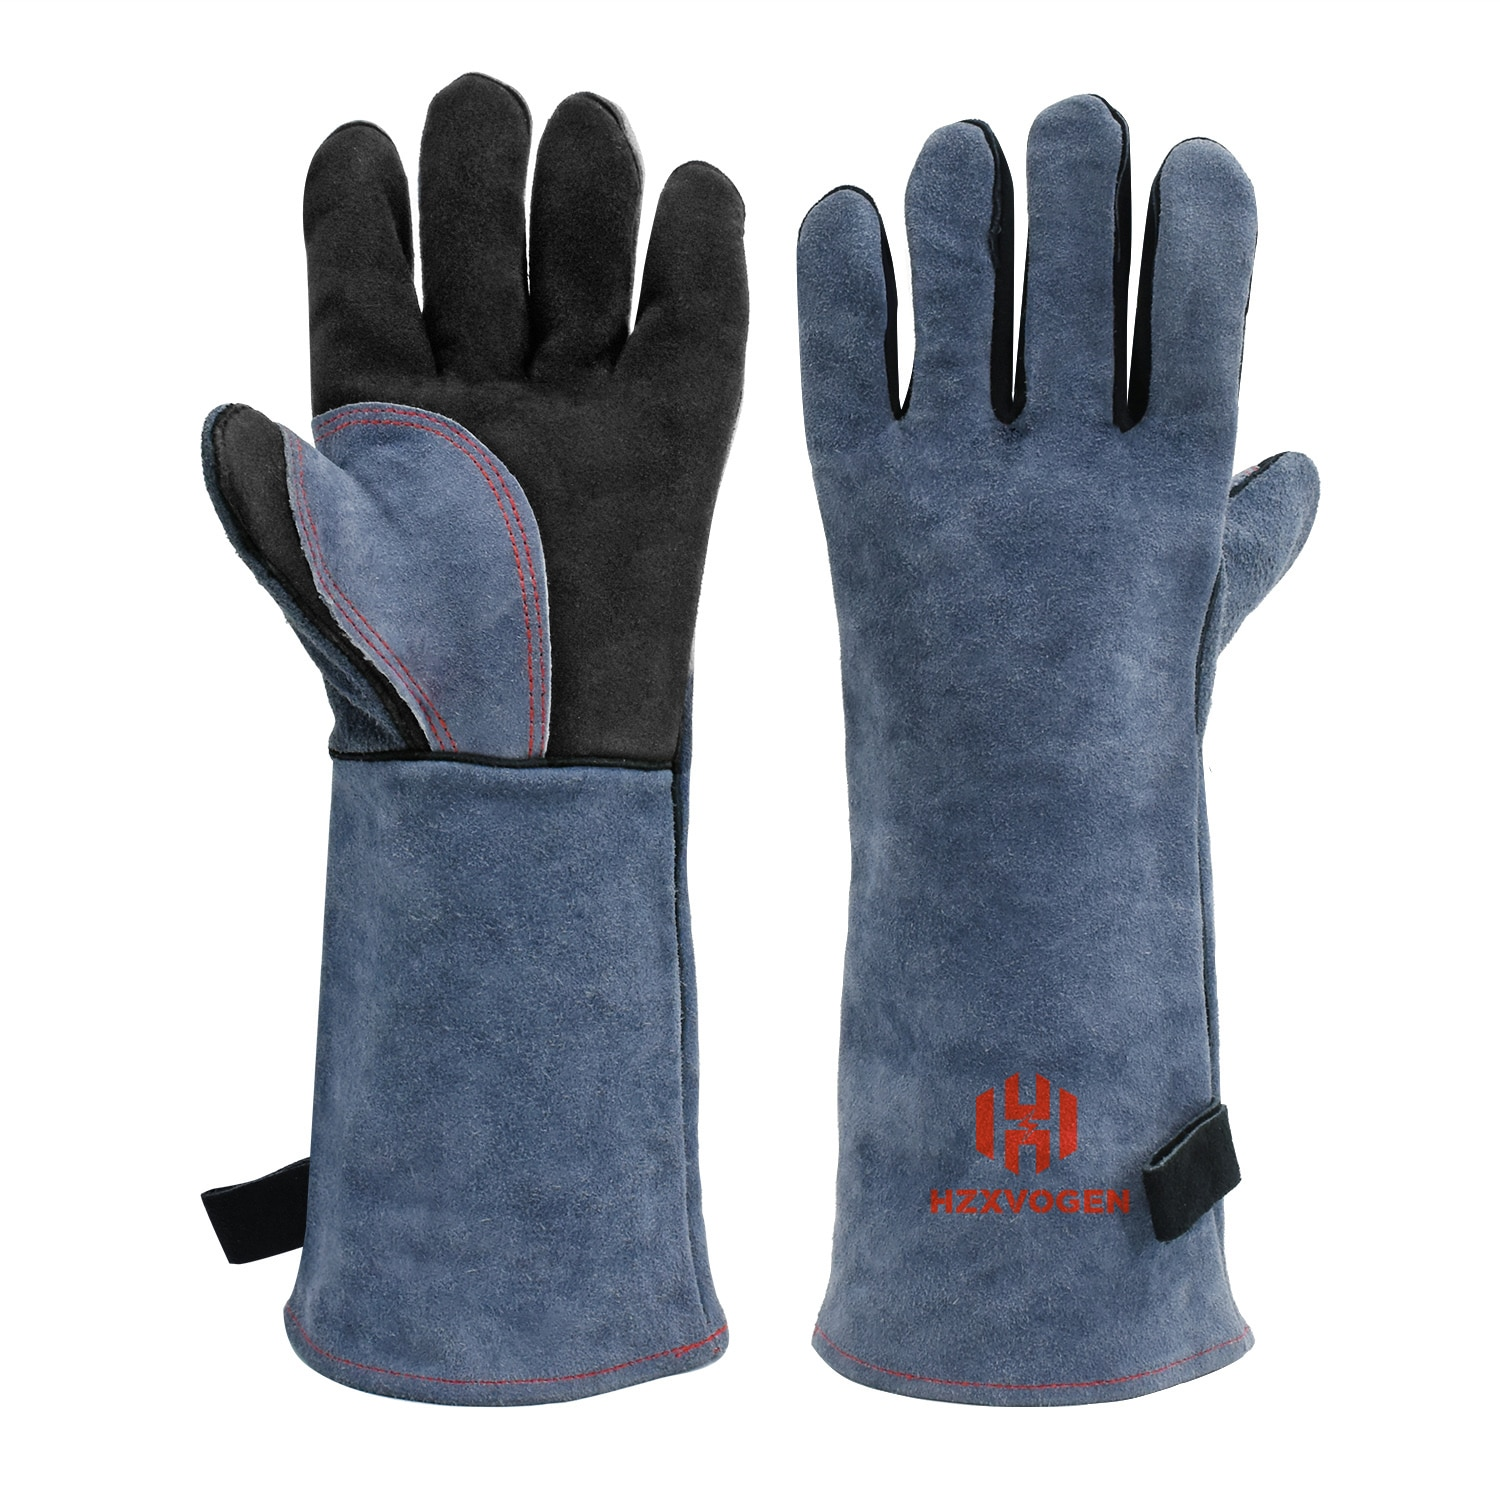 warm winter safety glove split cow leather welding work glove Welding Gloves For Welder works with Blue Palm Welders Thick Cow Split Leather Kitchen Stove Heat Puncture Resistant BBQ Glove